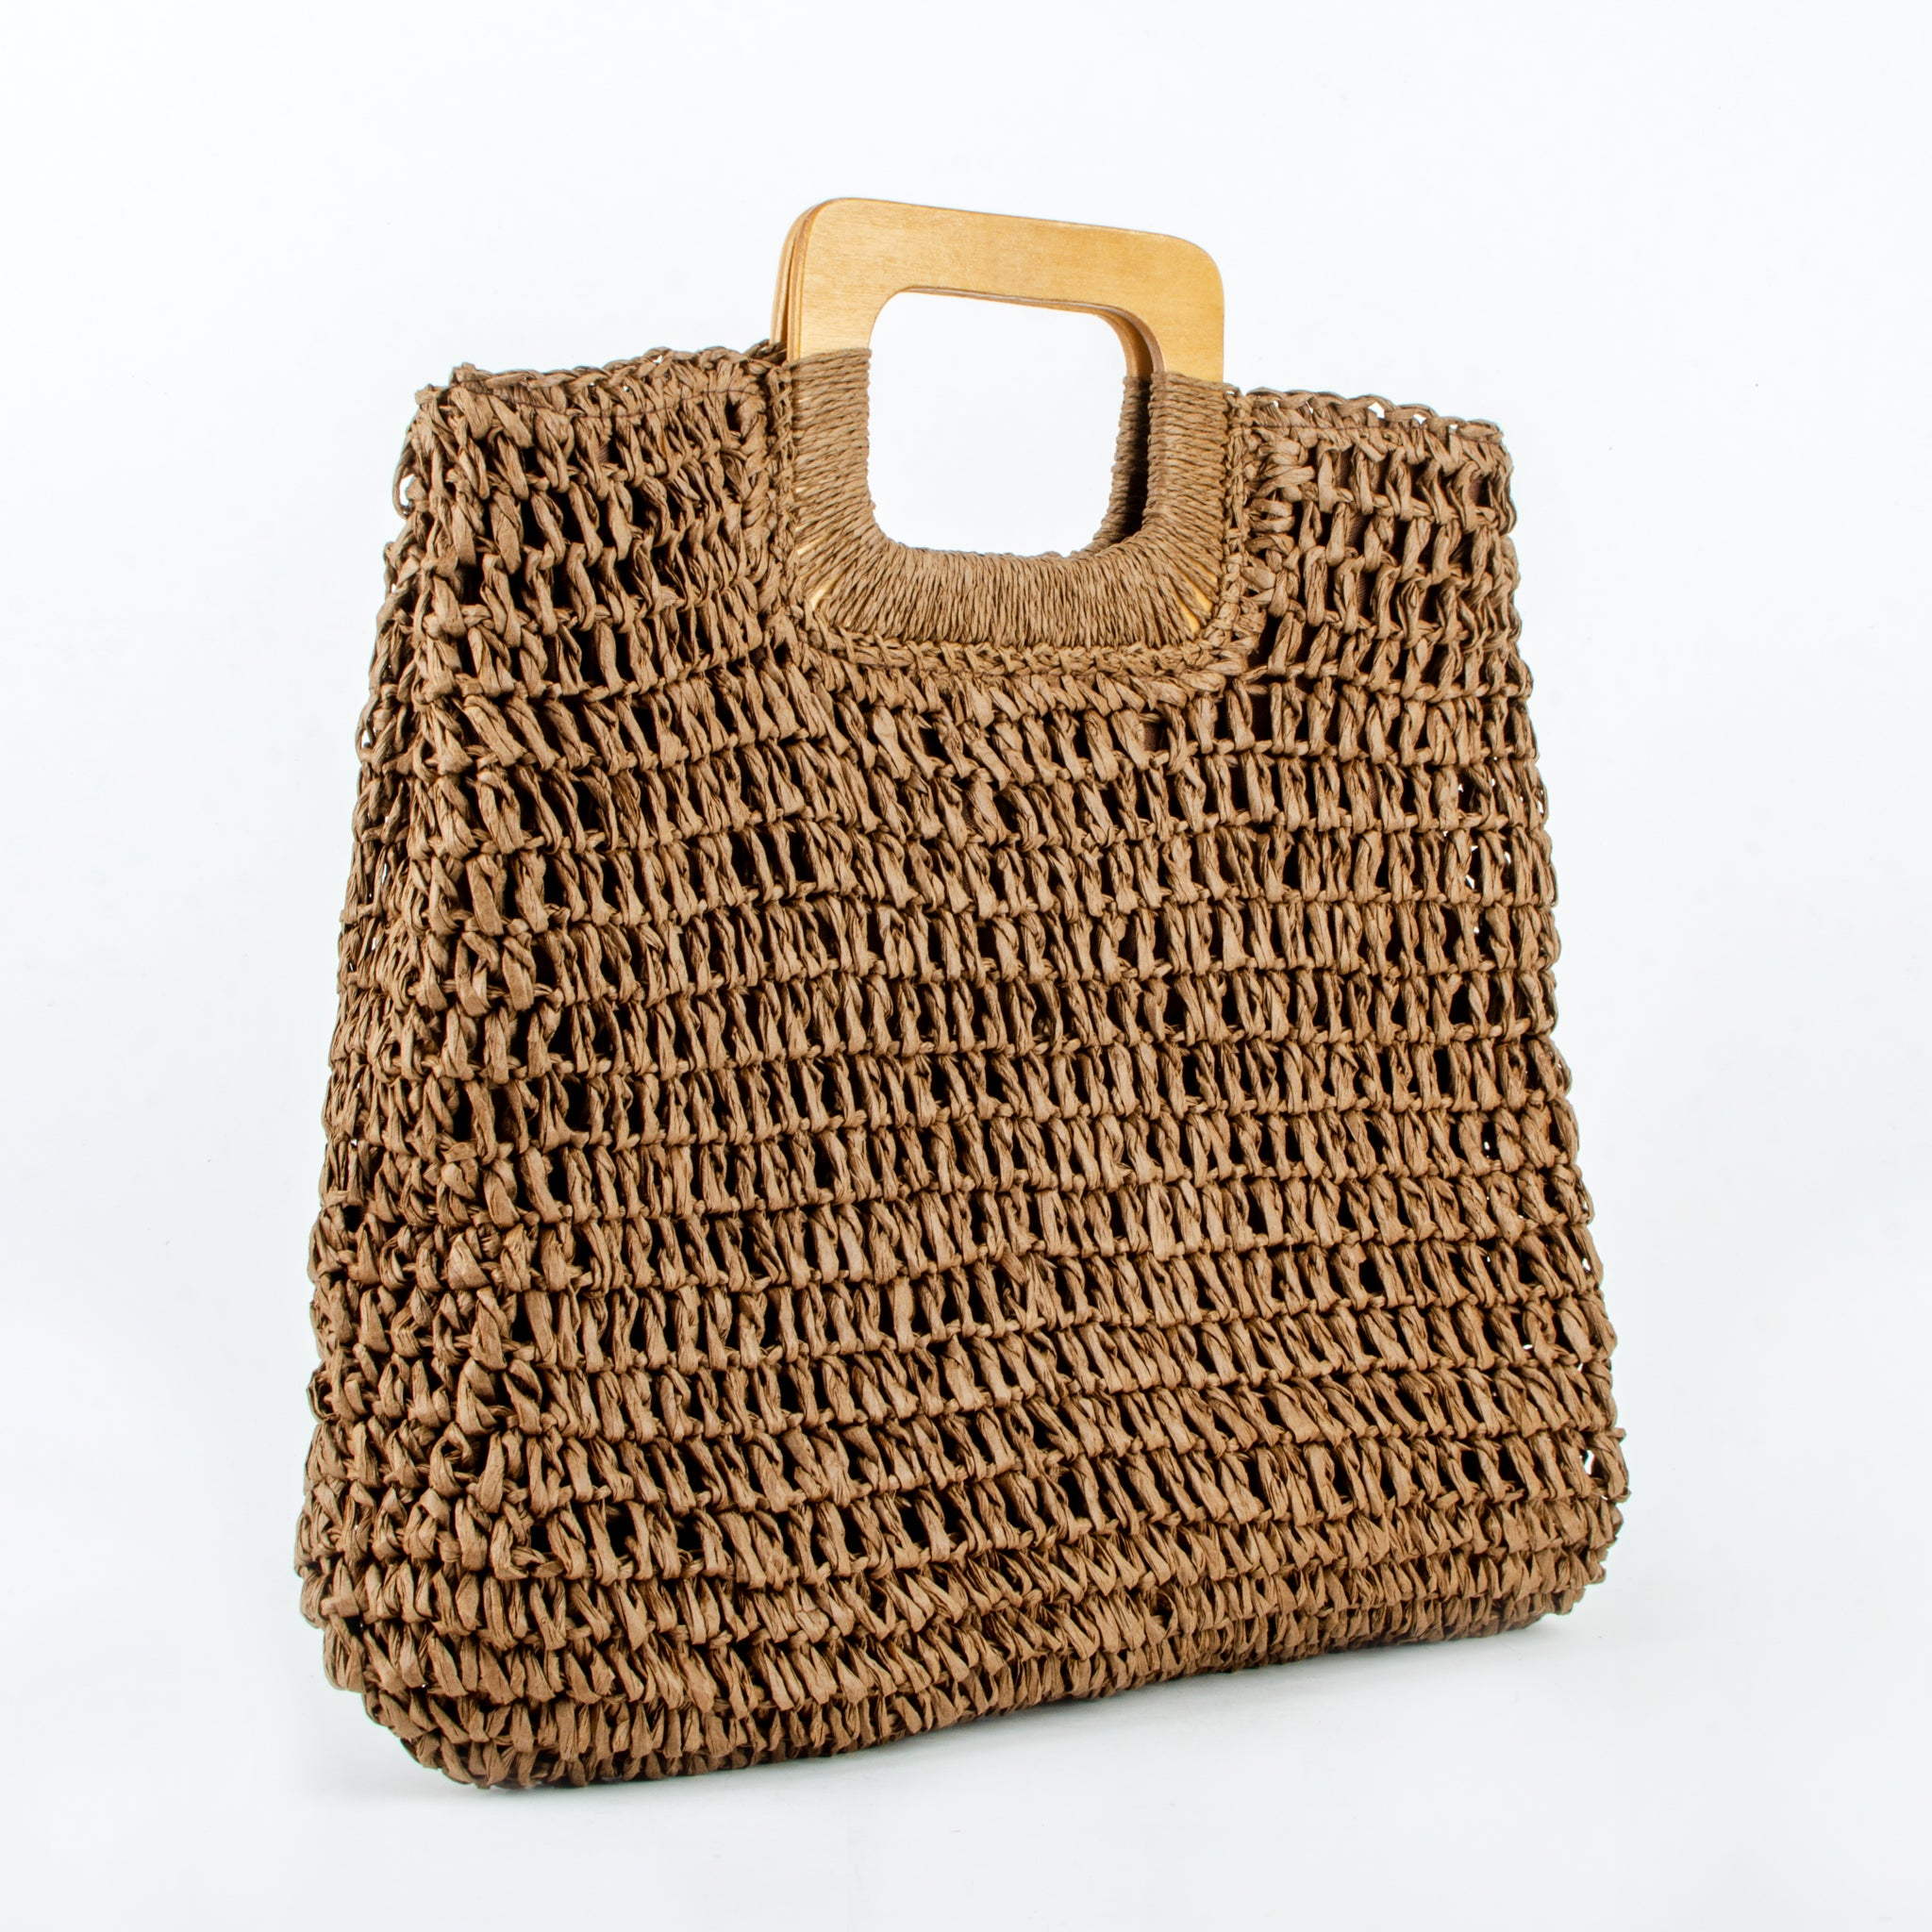 Straw bag amaria brown ecoego